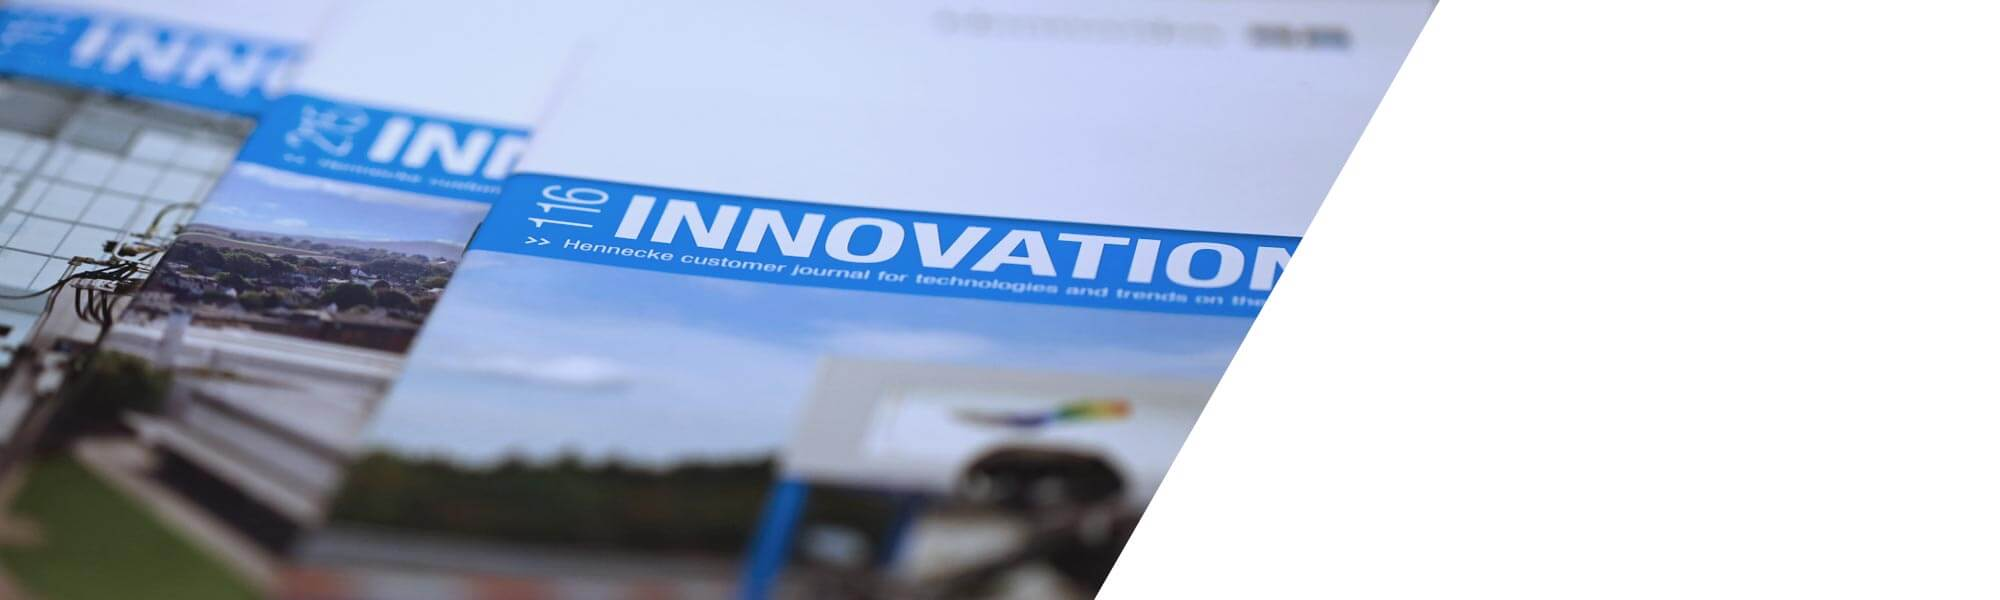 Hennecke GROUP INNOVATIONS